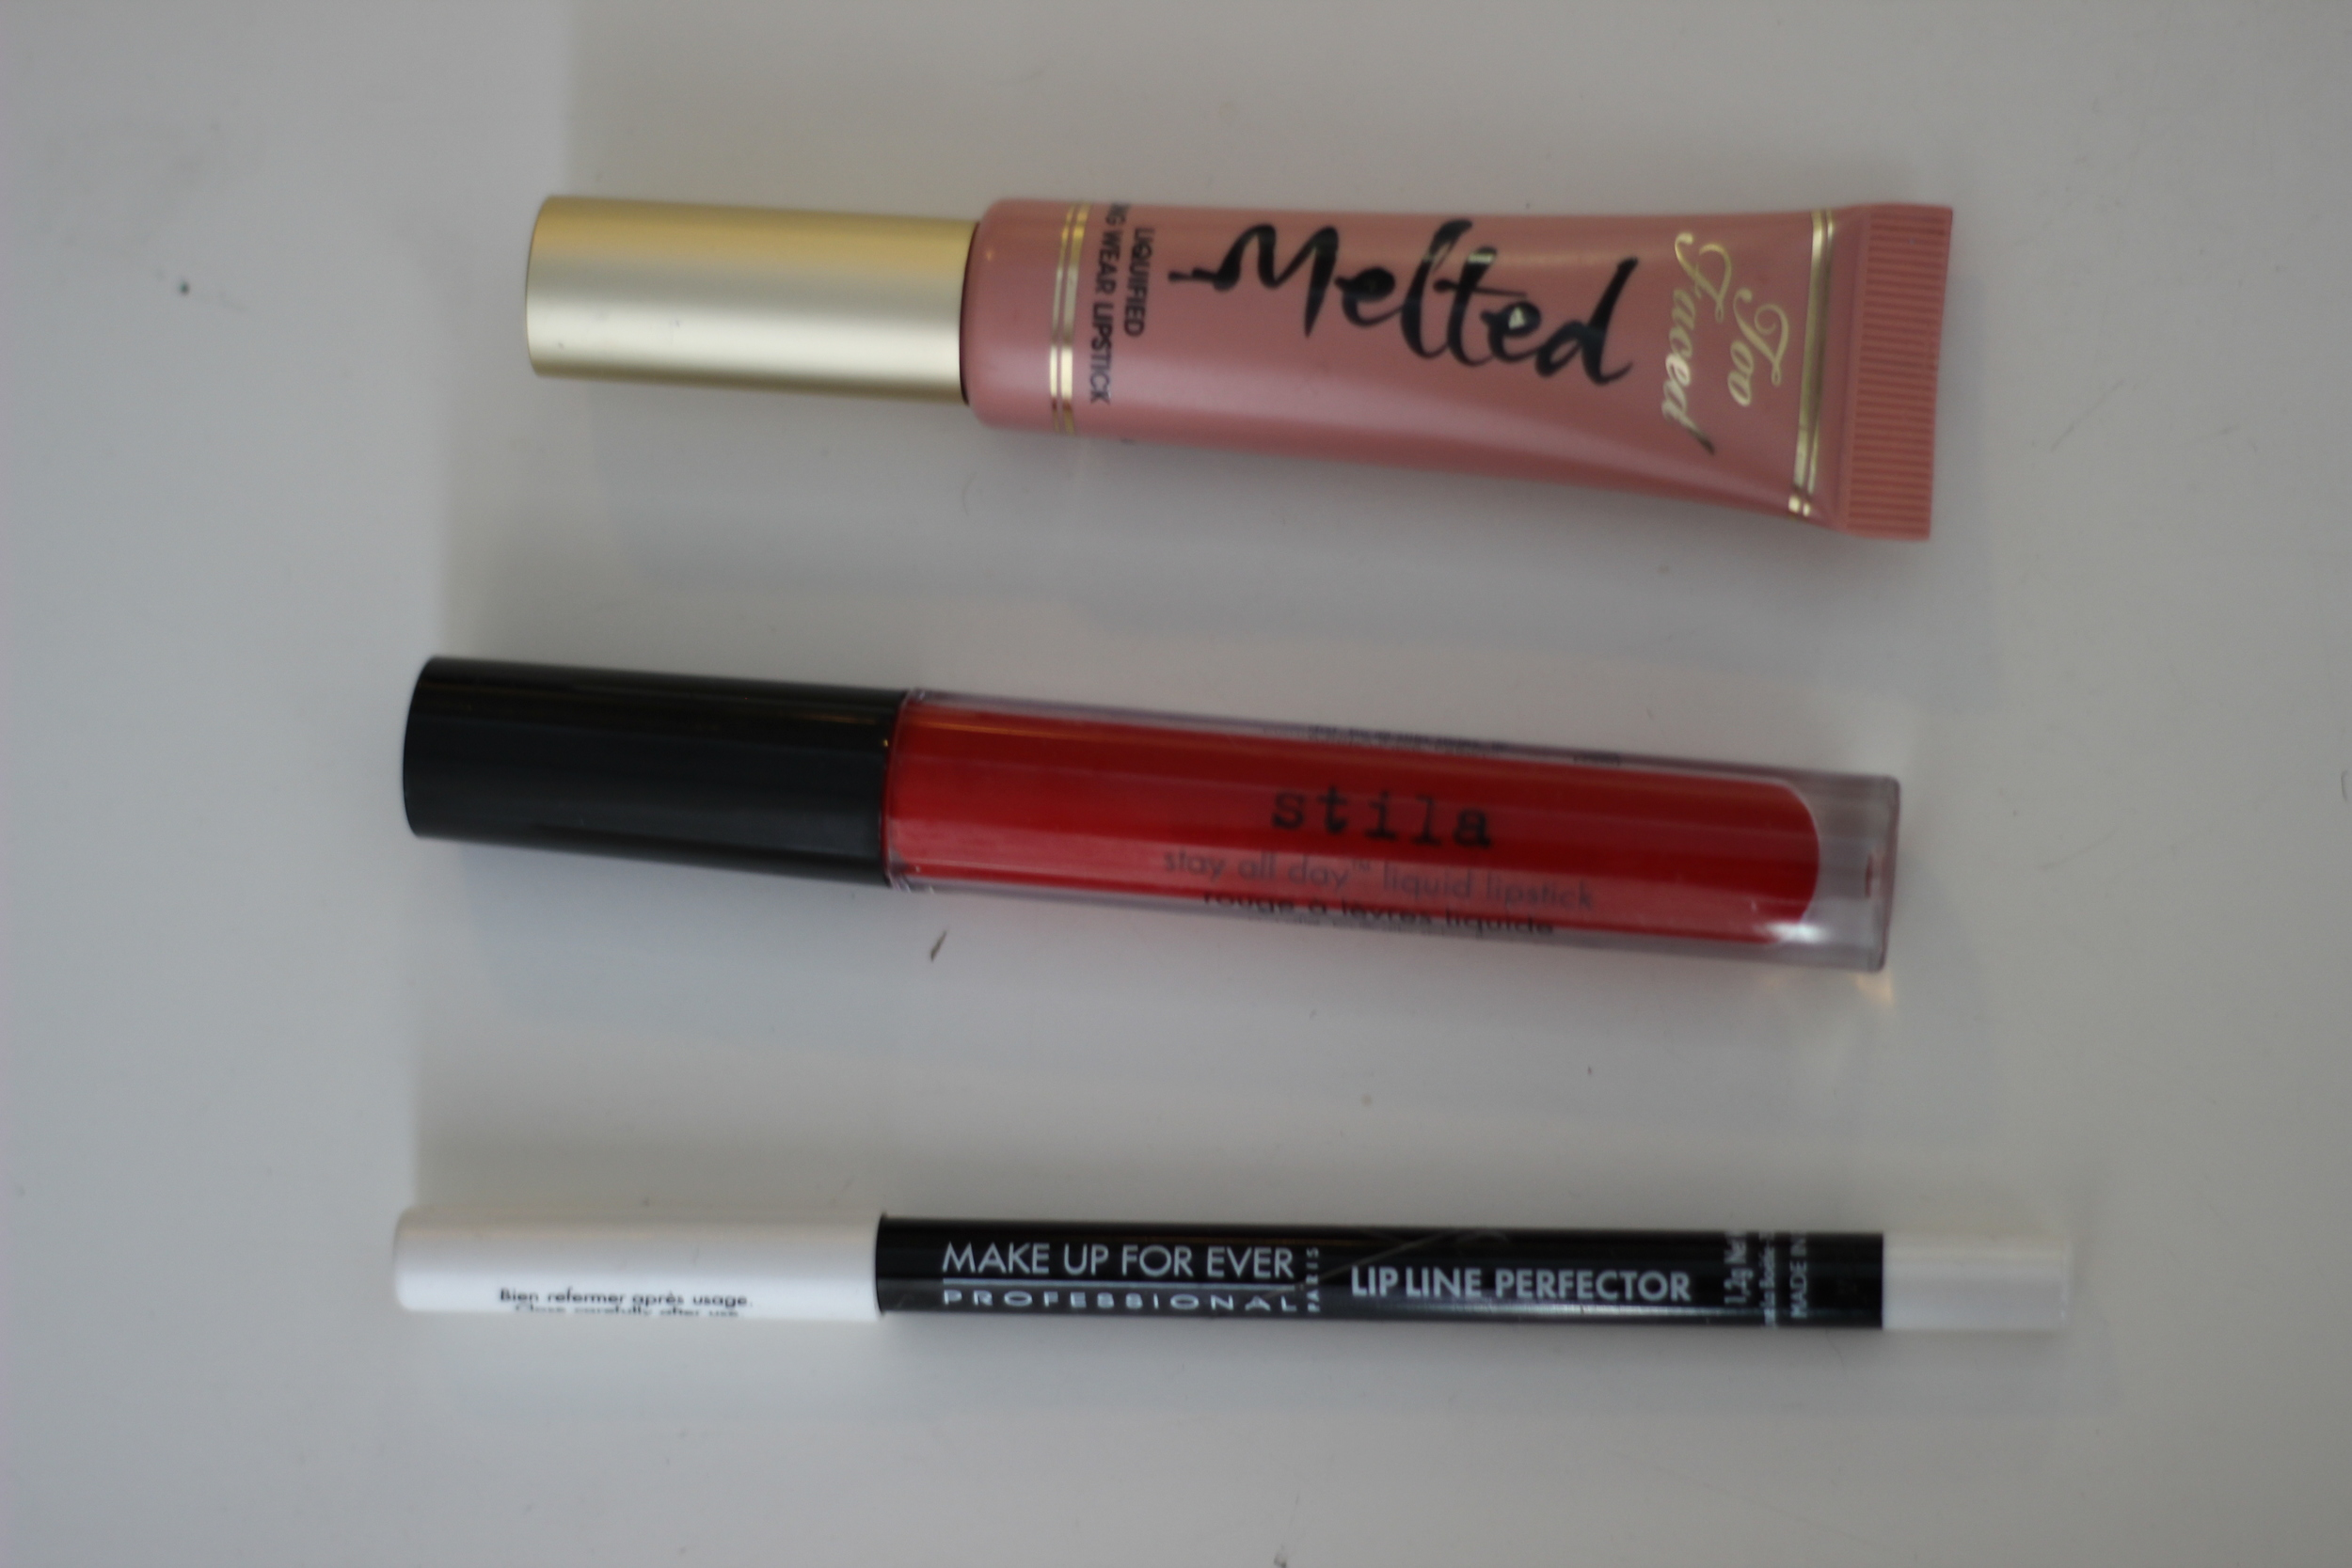 Top to Bottom: Too Faced Melted Nude, Stilla Stay All Day Beso, MUFE clear liner